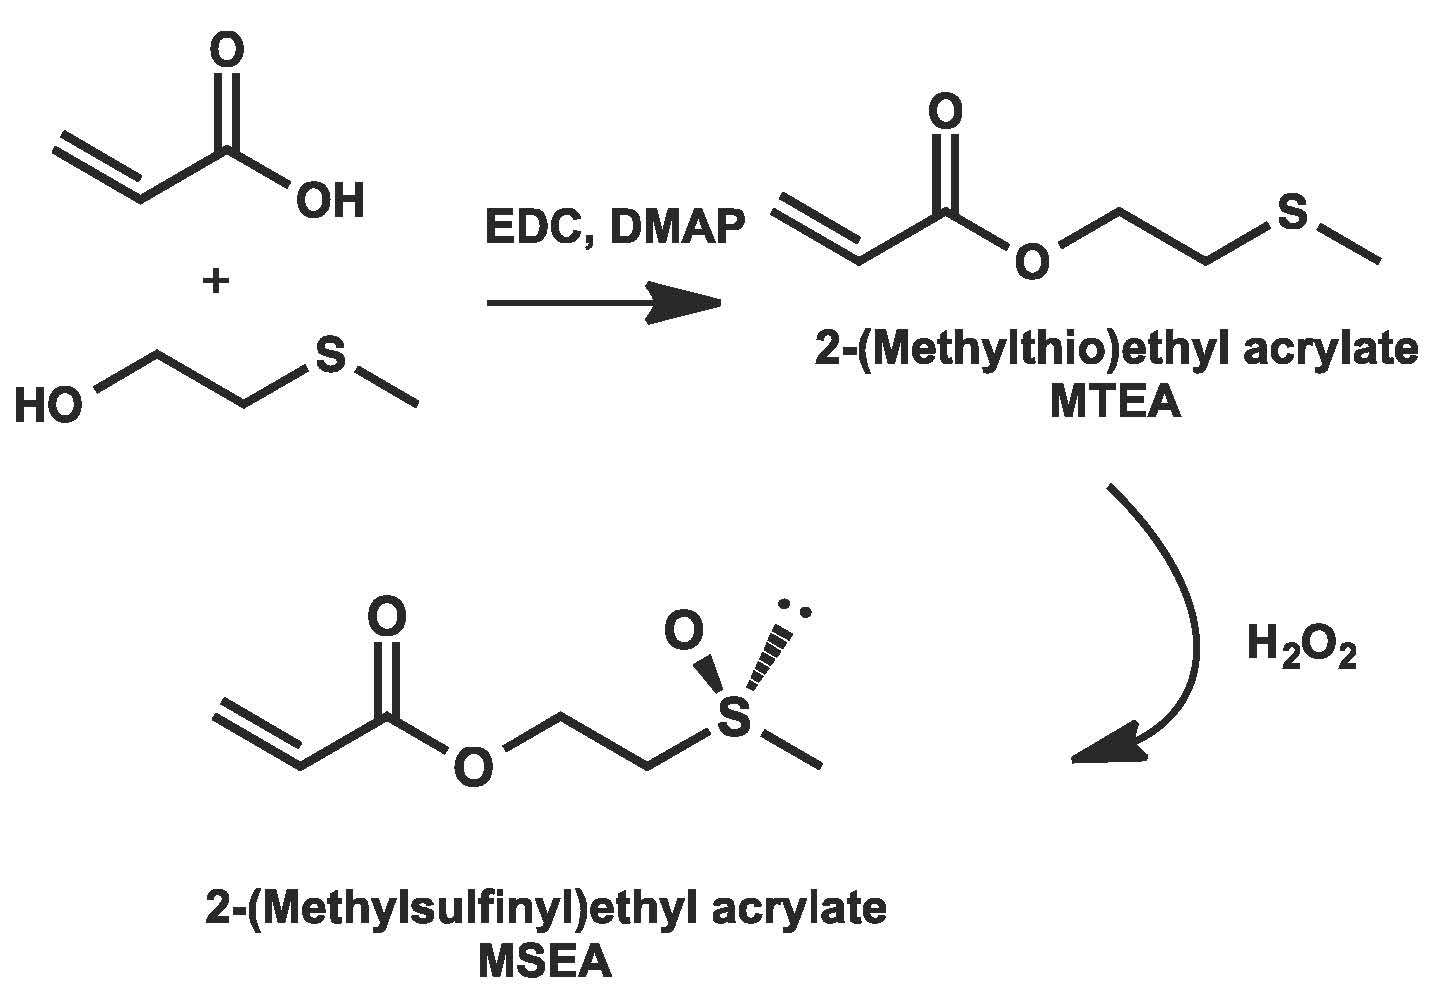 hight resolution of  85 2 methylthio ethyl acrylate mtae was prepared as shown in the following schematic and it could be directly polymerized and then oxidized to the